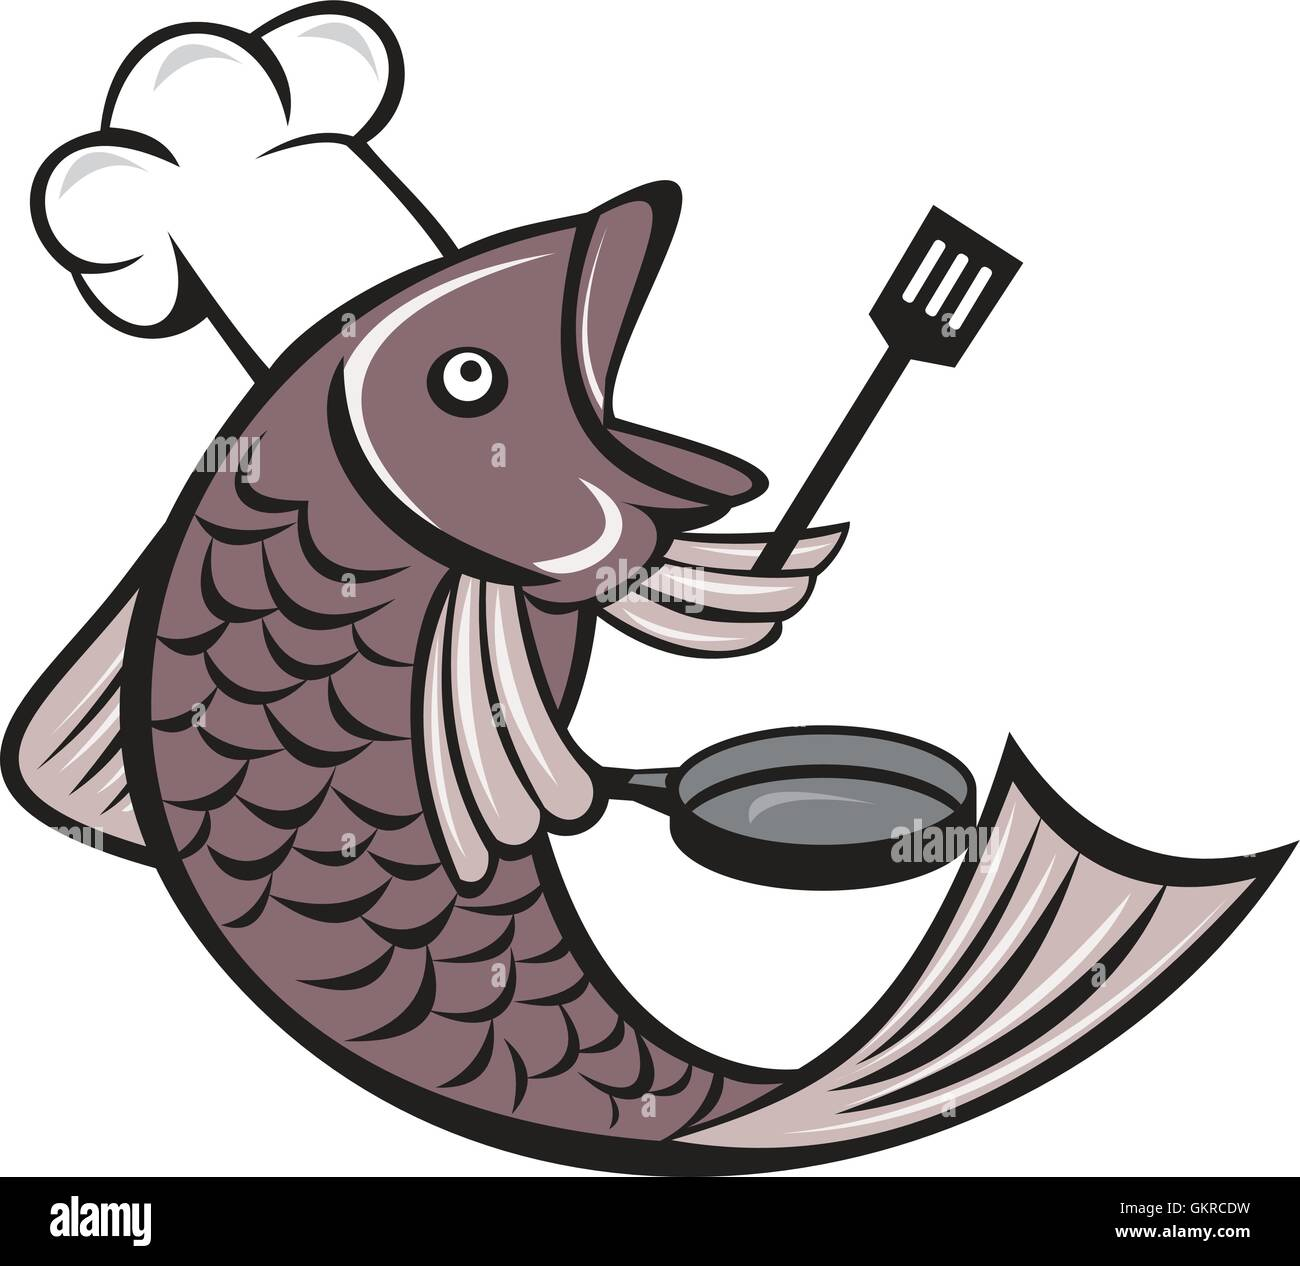 fish chef cook holding spatula frying pan cartoon stock Cartoon Shrimp Cartoon Shrimp